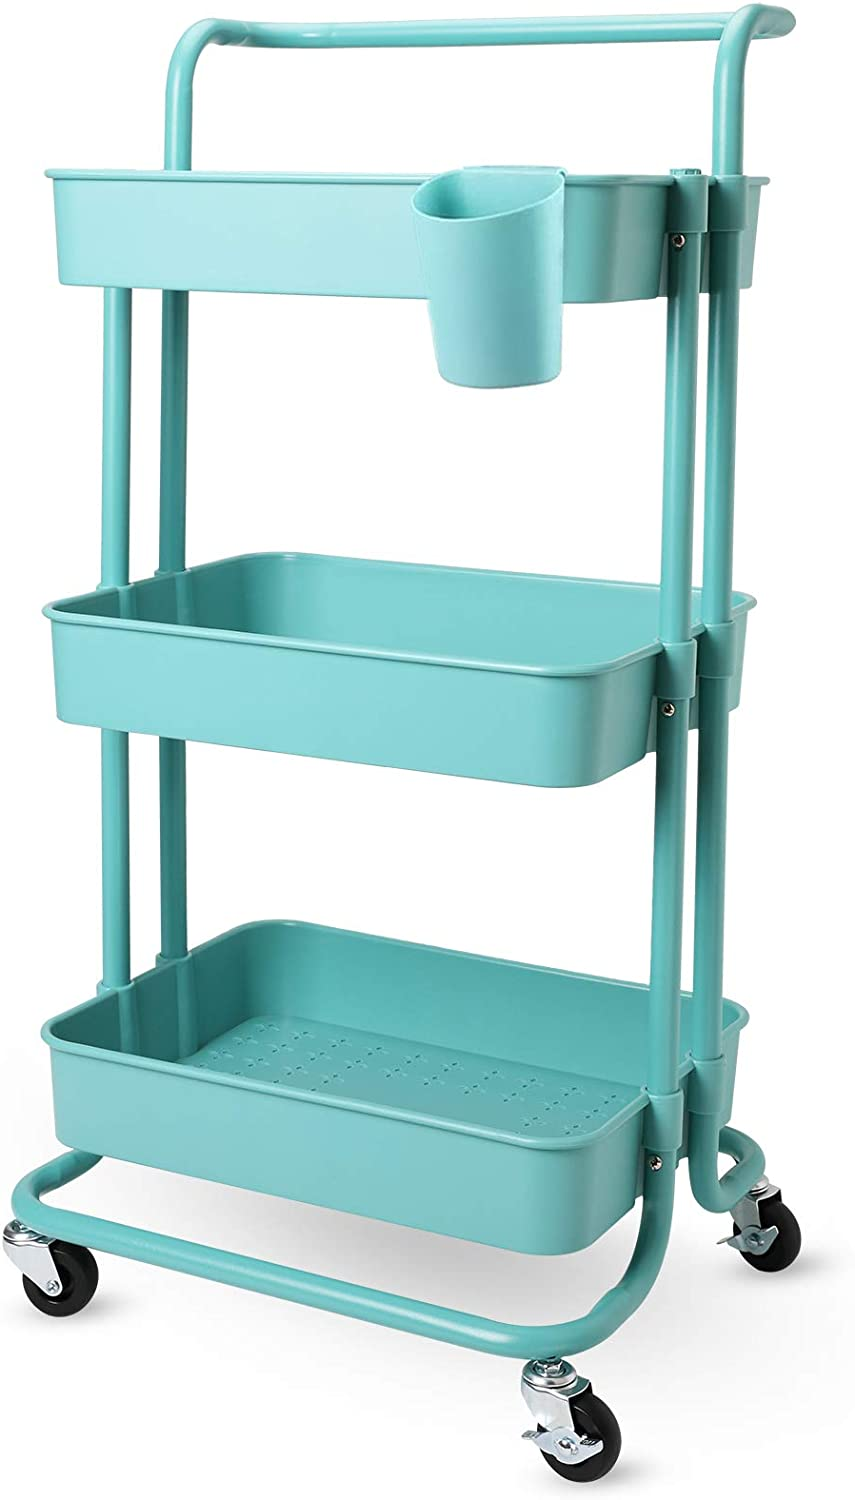 JAKAGO 3-Tier Rolling Utility Cart Storage Shelf Rack with Wheels and Mesh Baskets Organizer Cart Multifunction Rolling Storage Trolley Service Cart for Bathroom, Kitchen, Office, Laundry Room (Teal)